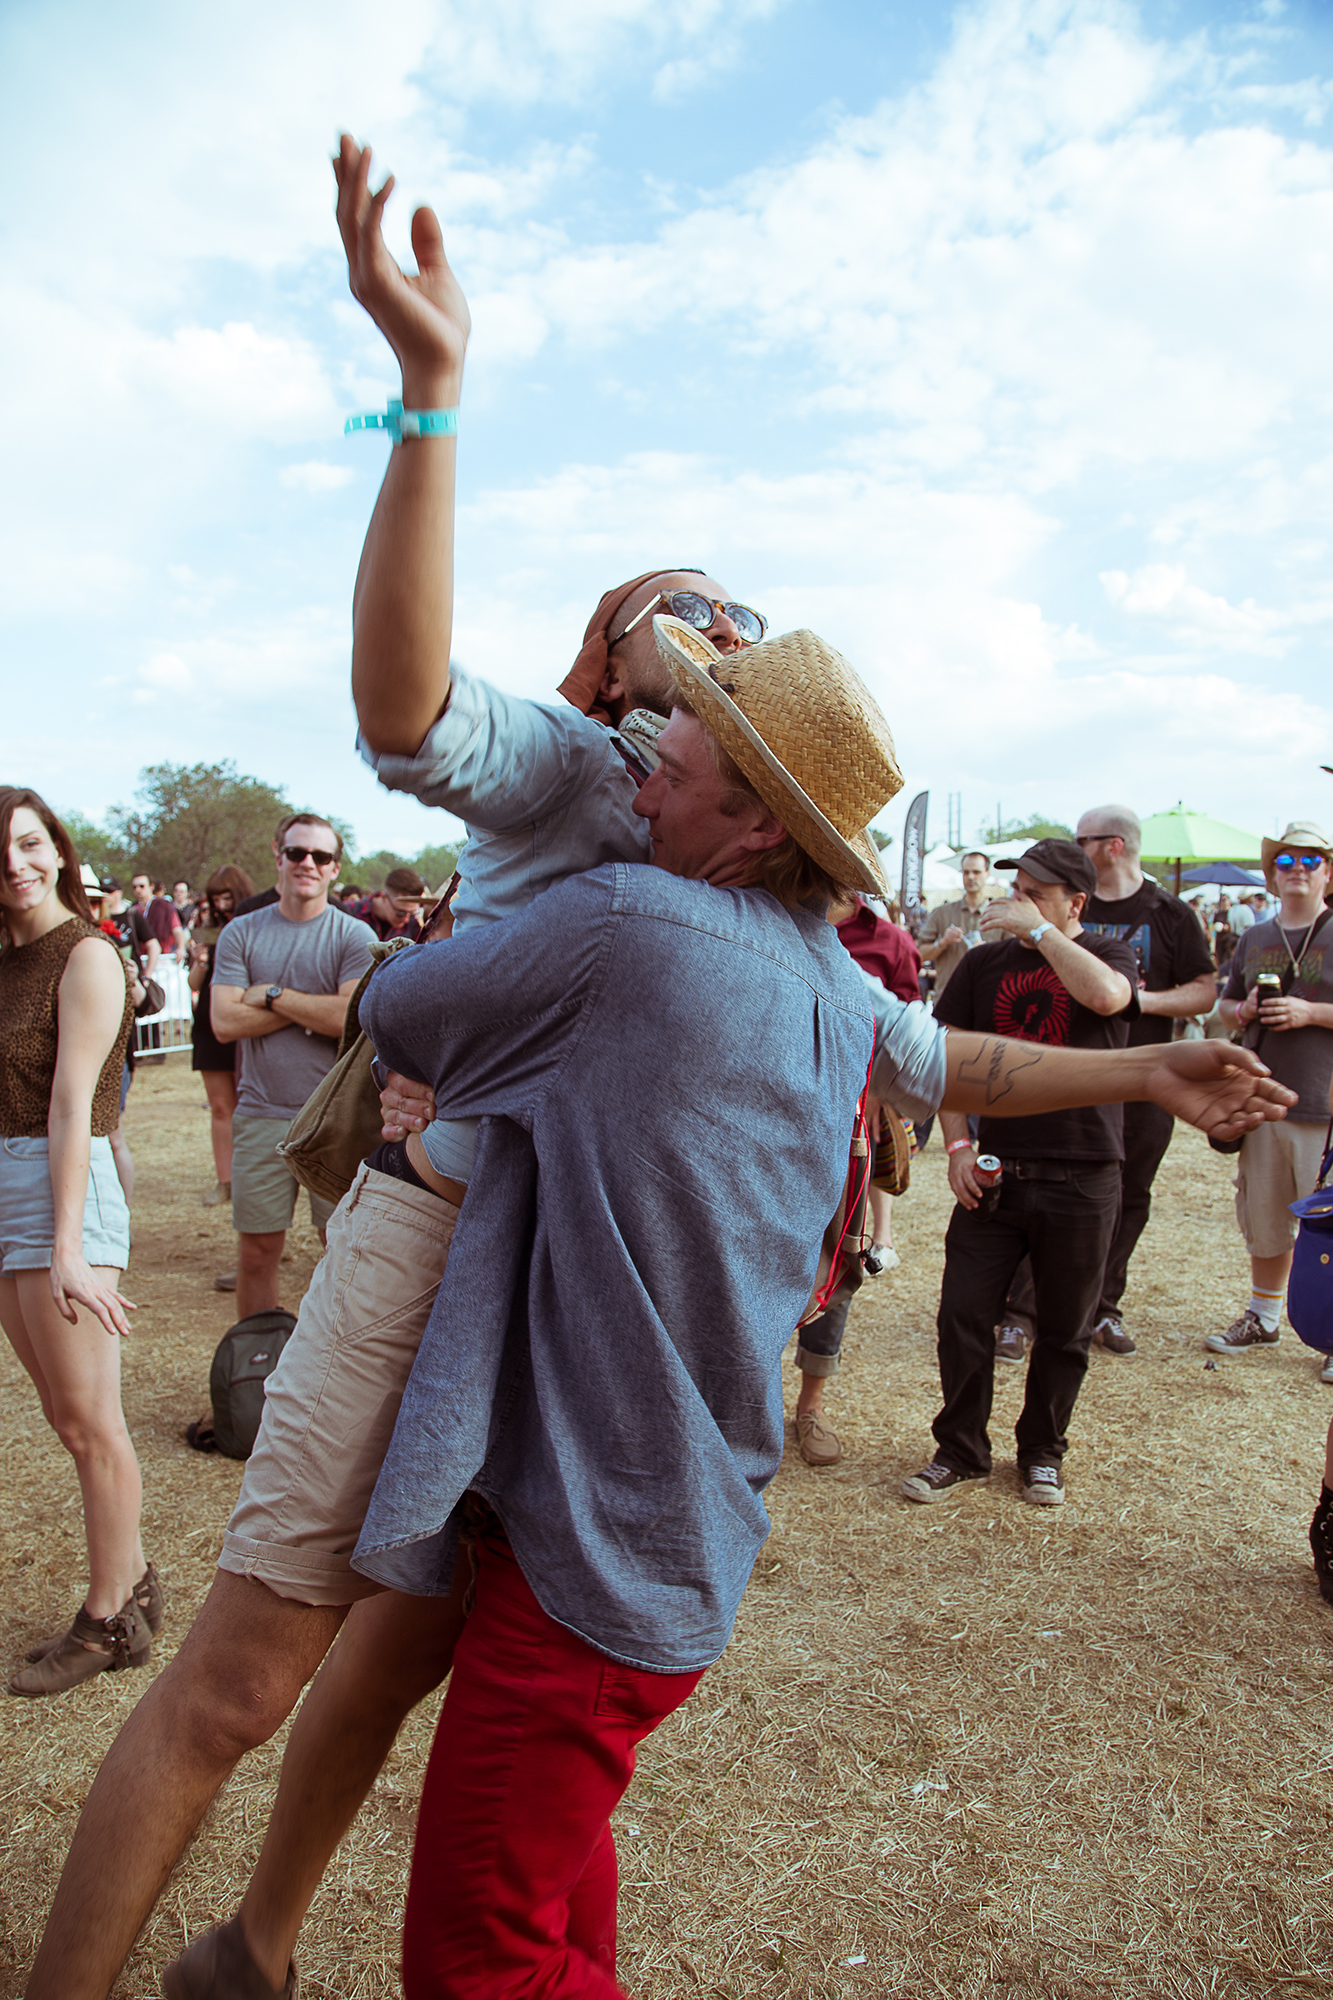 man in straw hat hugs and lifts other man